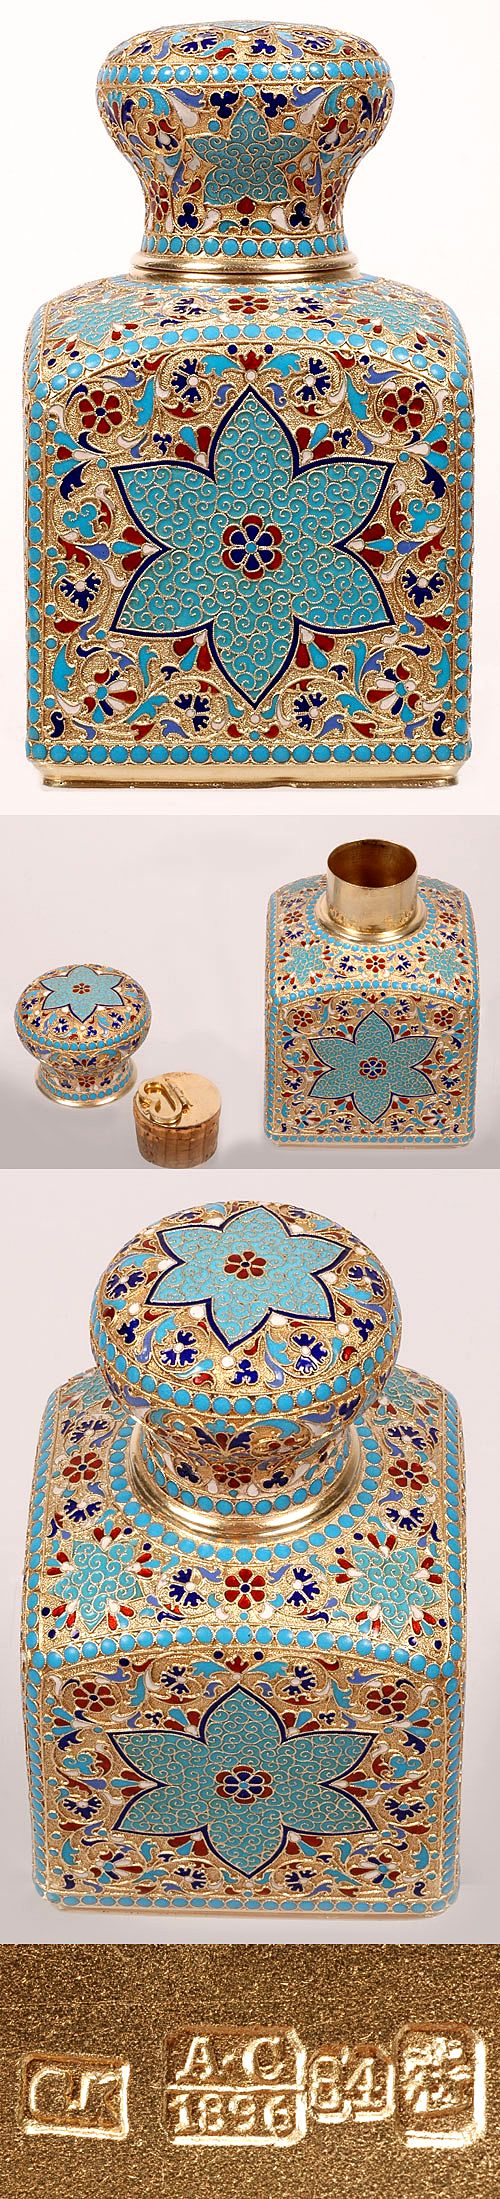 A Russian gilded silver and cloisonne enamel tea caddy by Gustav Klingert, Moscow, circa 1896, the sides decorated with large turquoise flowers against gilded, stippled grounds covered with scrolling enameled foliage within a turquoise beaded borders.